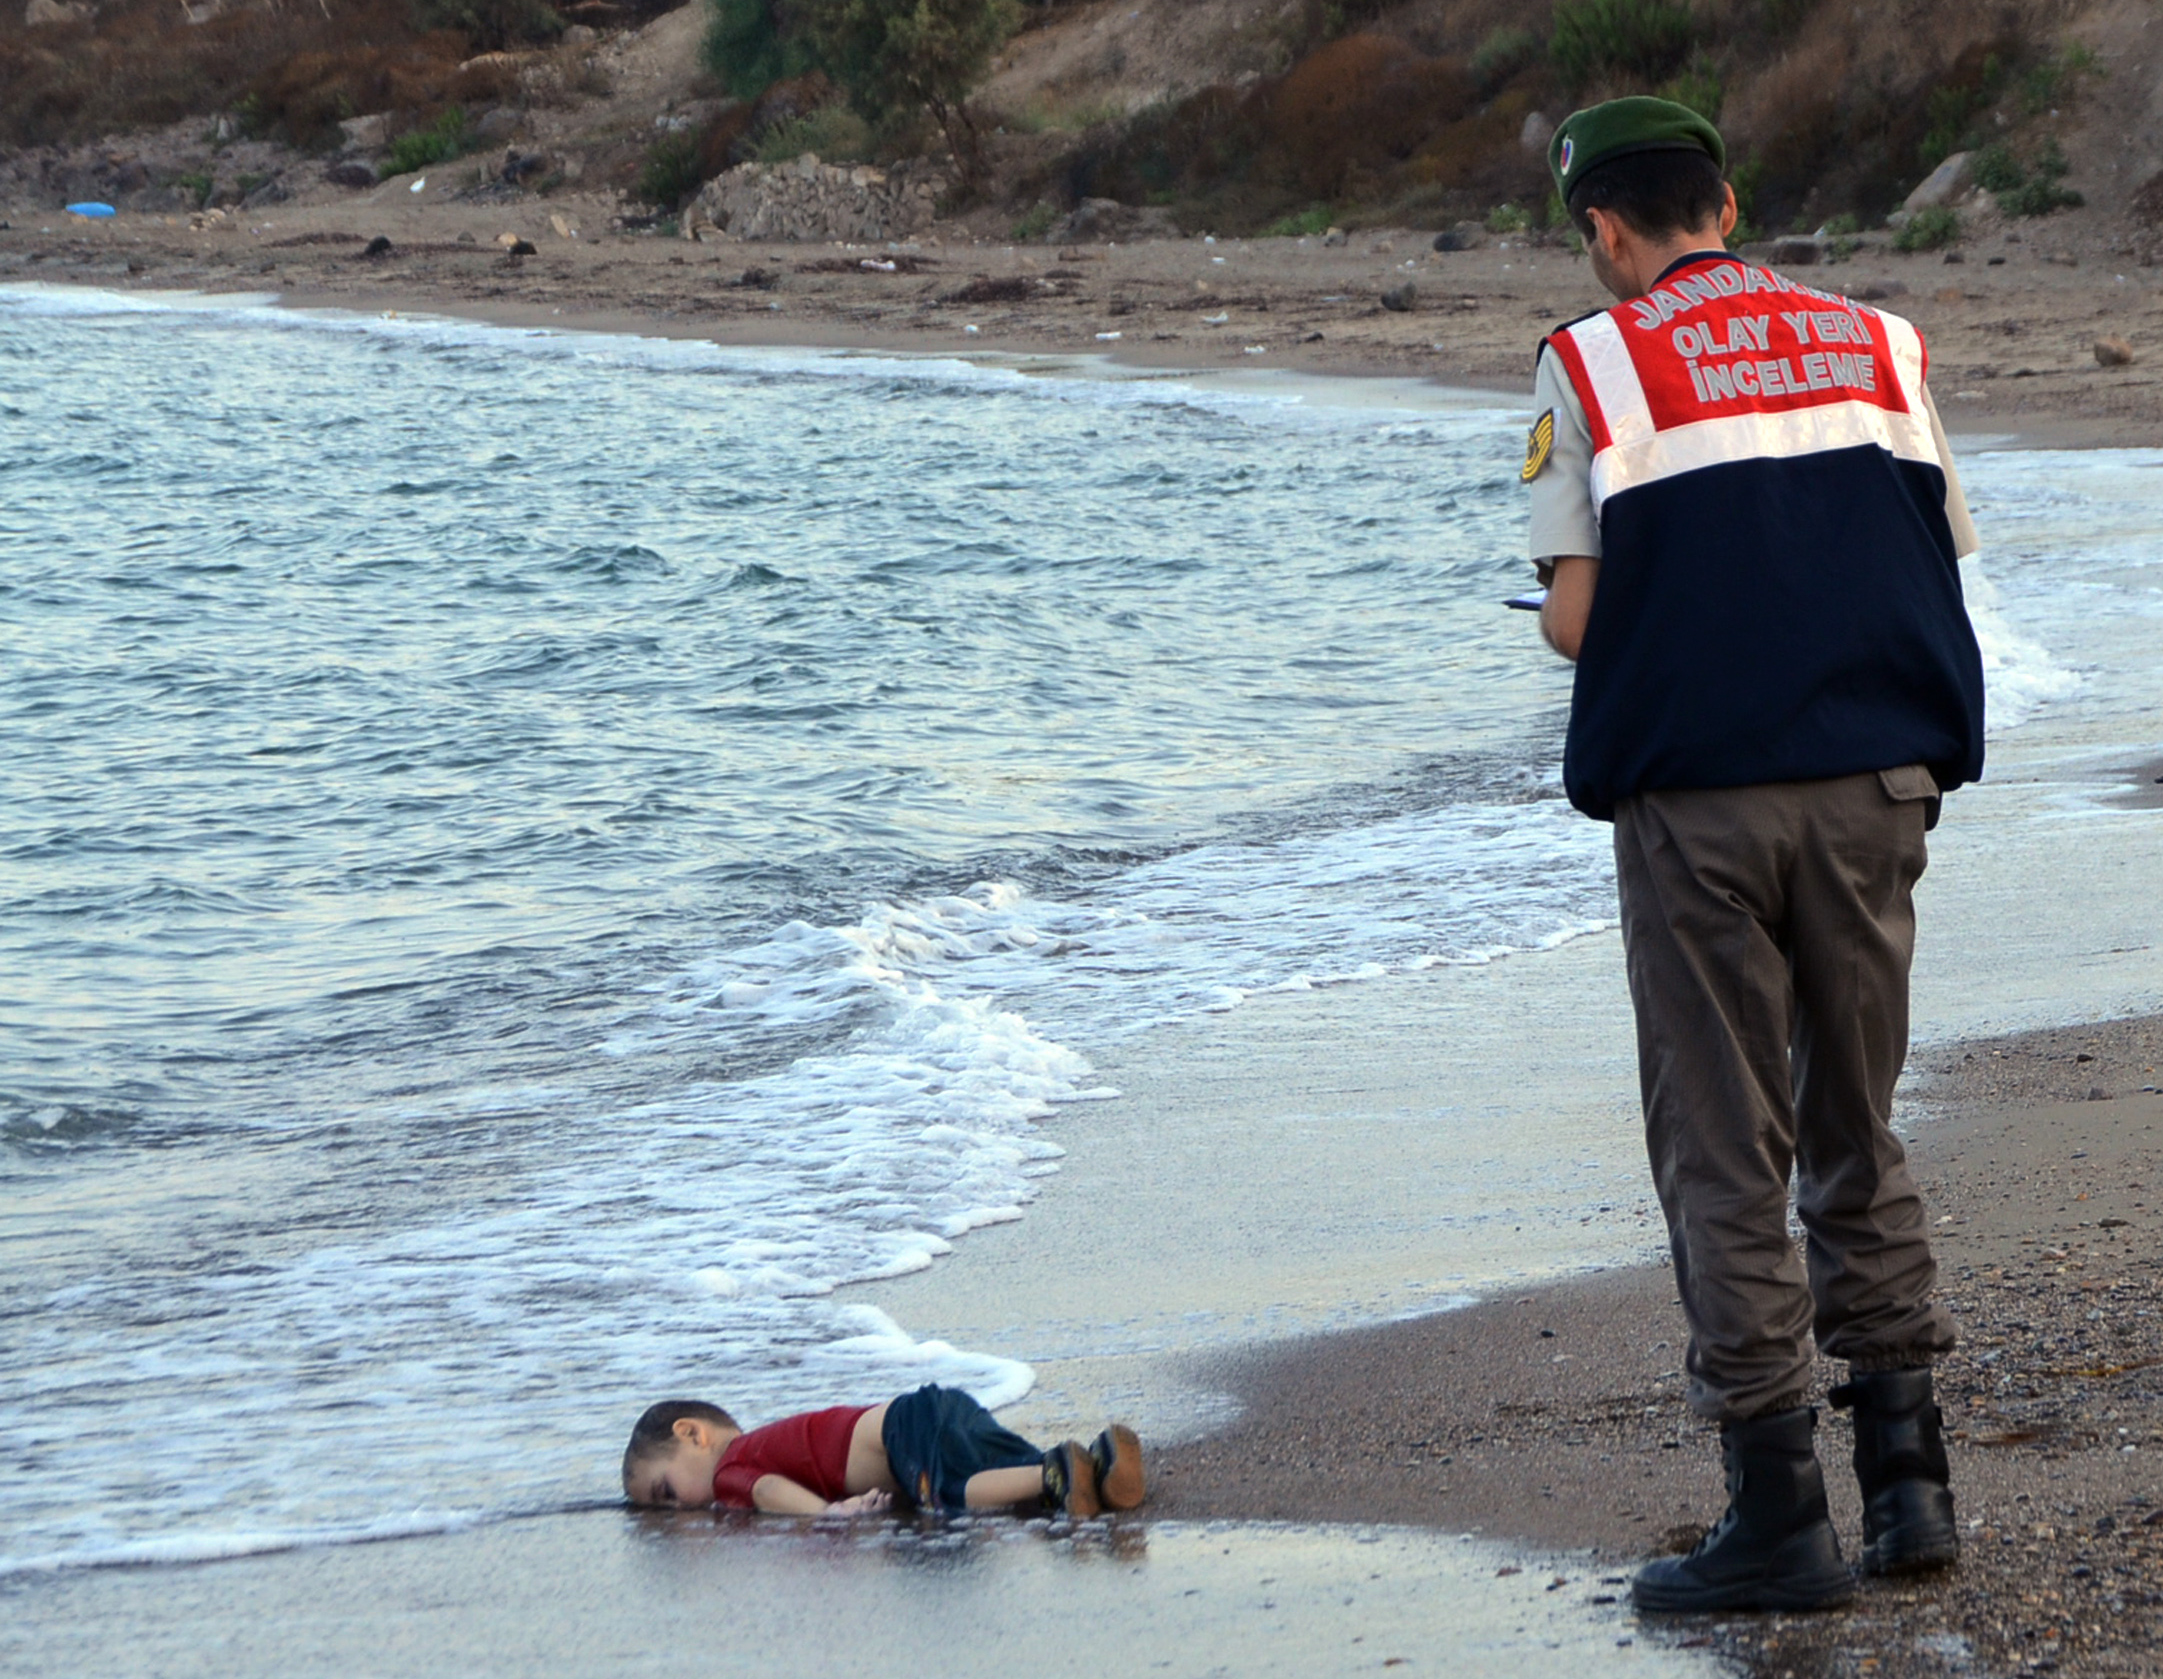 A paramilitary police officer investigates the scene before carrying the lifeless body of Alan Kurdi, 3, after a number of migrants died and others were reported missing when boats carrying them to the Greek island of Kos capsized near the Turkish resort of Bodrum on Sept. 2, 2015.